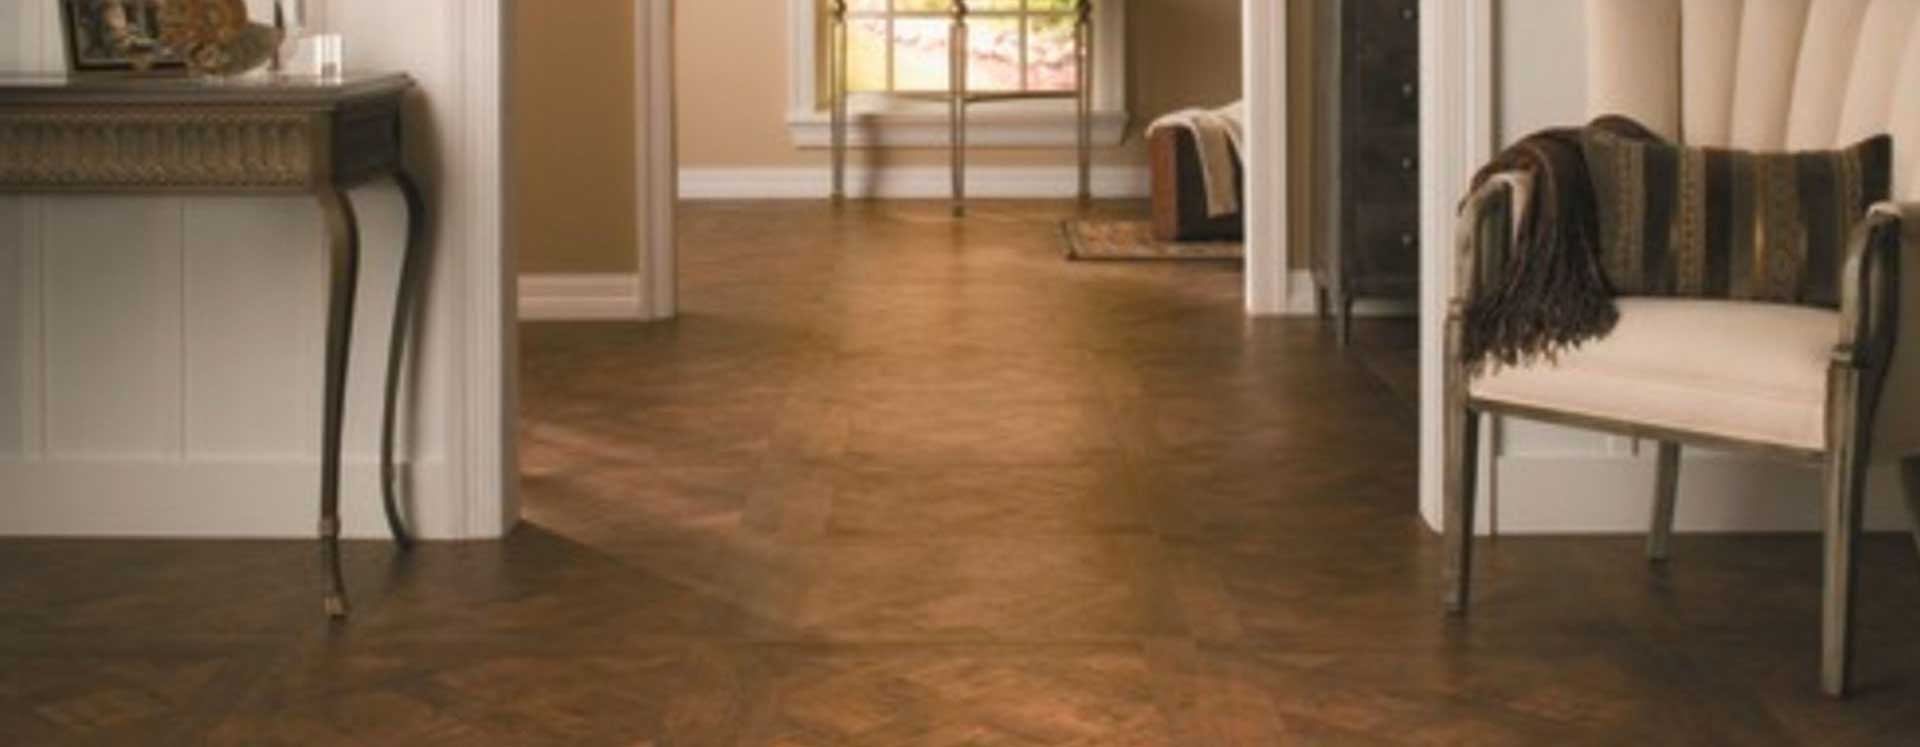 Ceramic Tile Regularly 3 99 Sqft